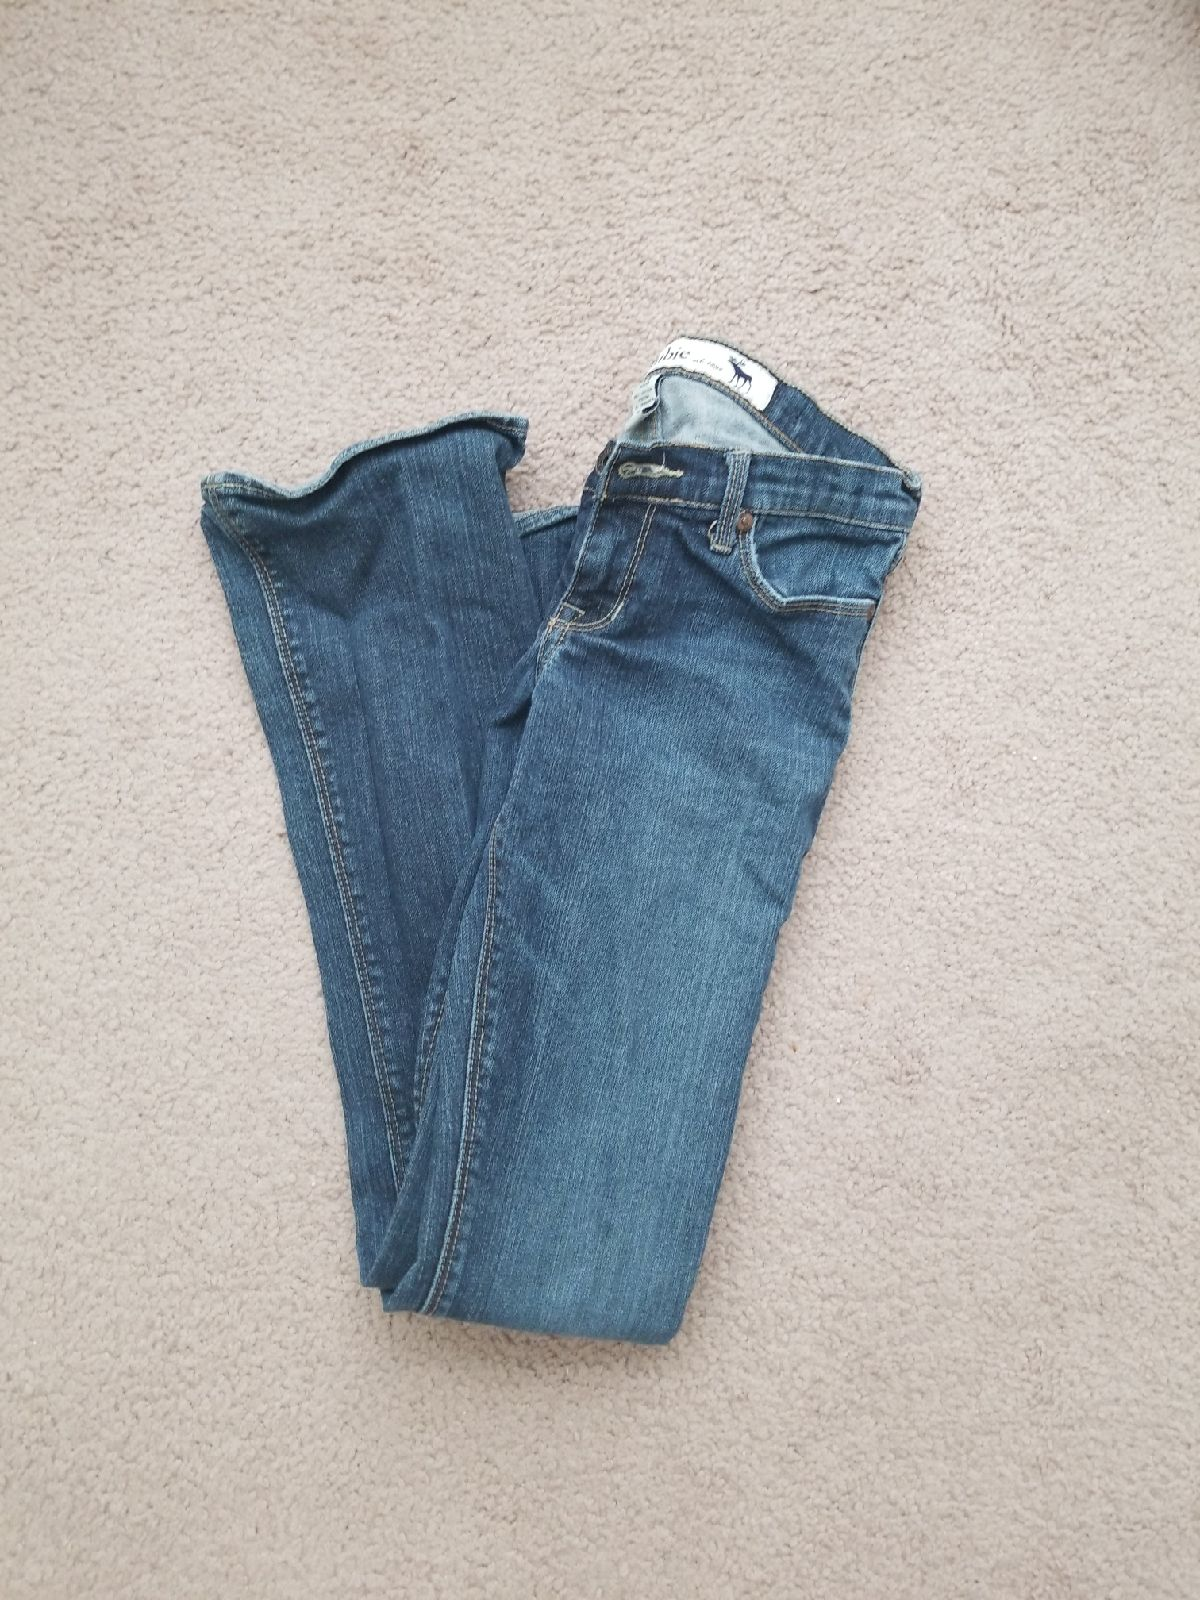 Abercrombie & Fitch Girl's Jeans